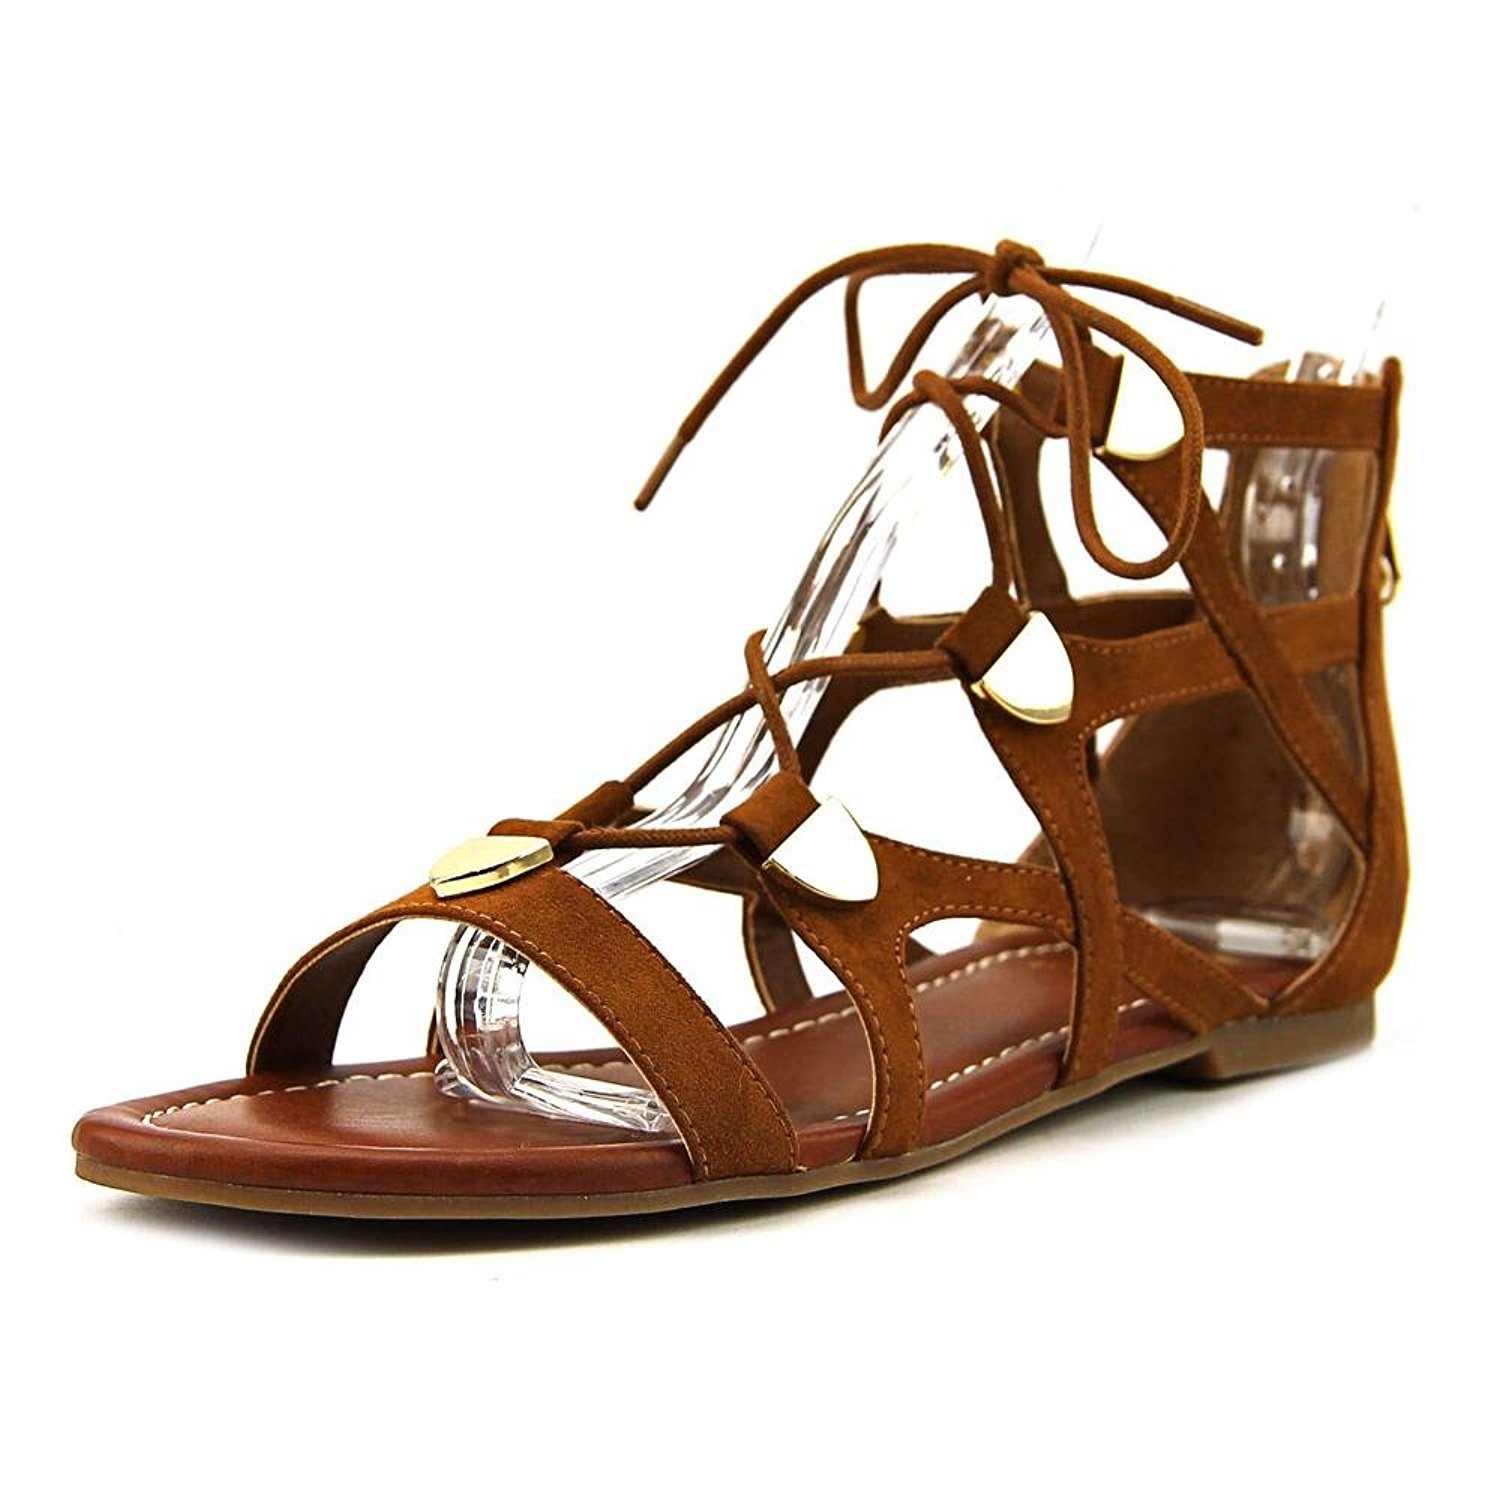 4affdb0fcf2d Details about G by GUESS Womens Lewy Fabric Open Toe Casual Gladiator  Sandals